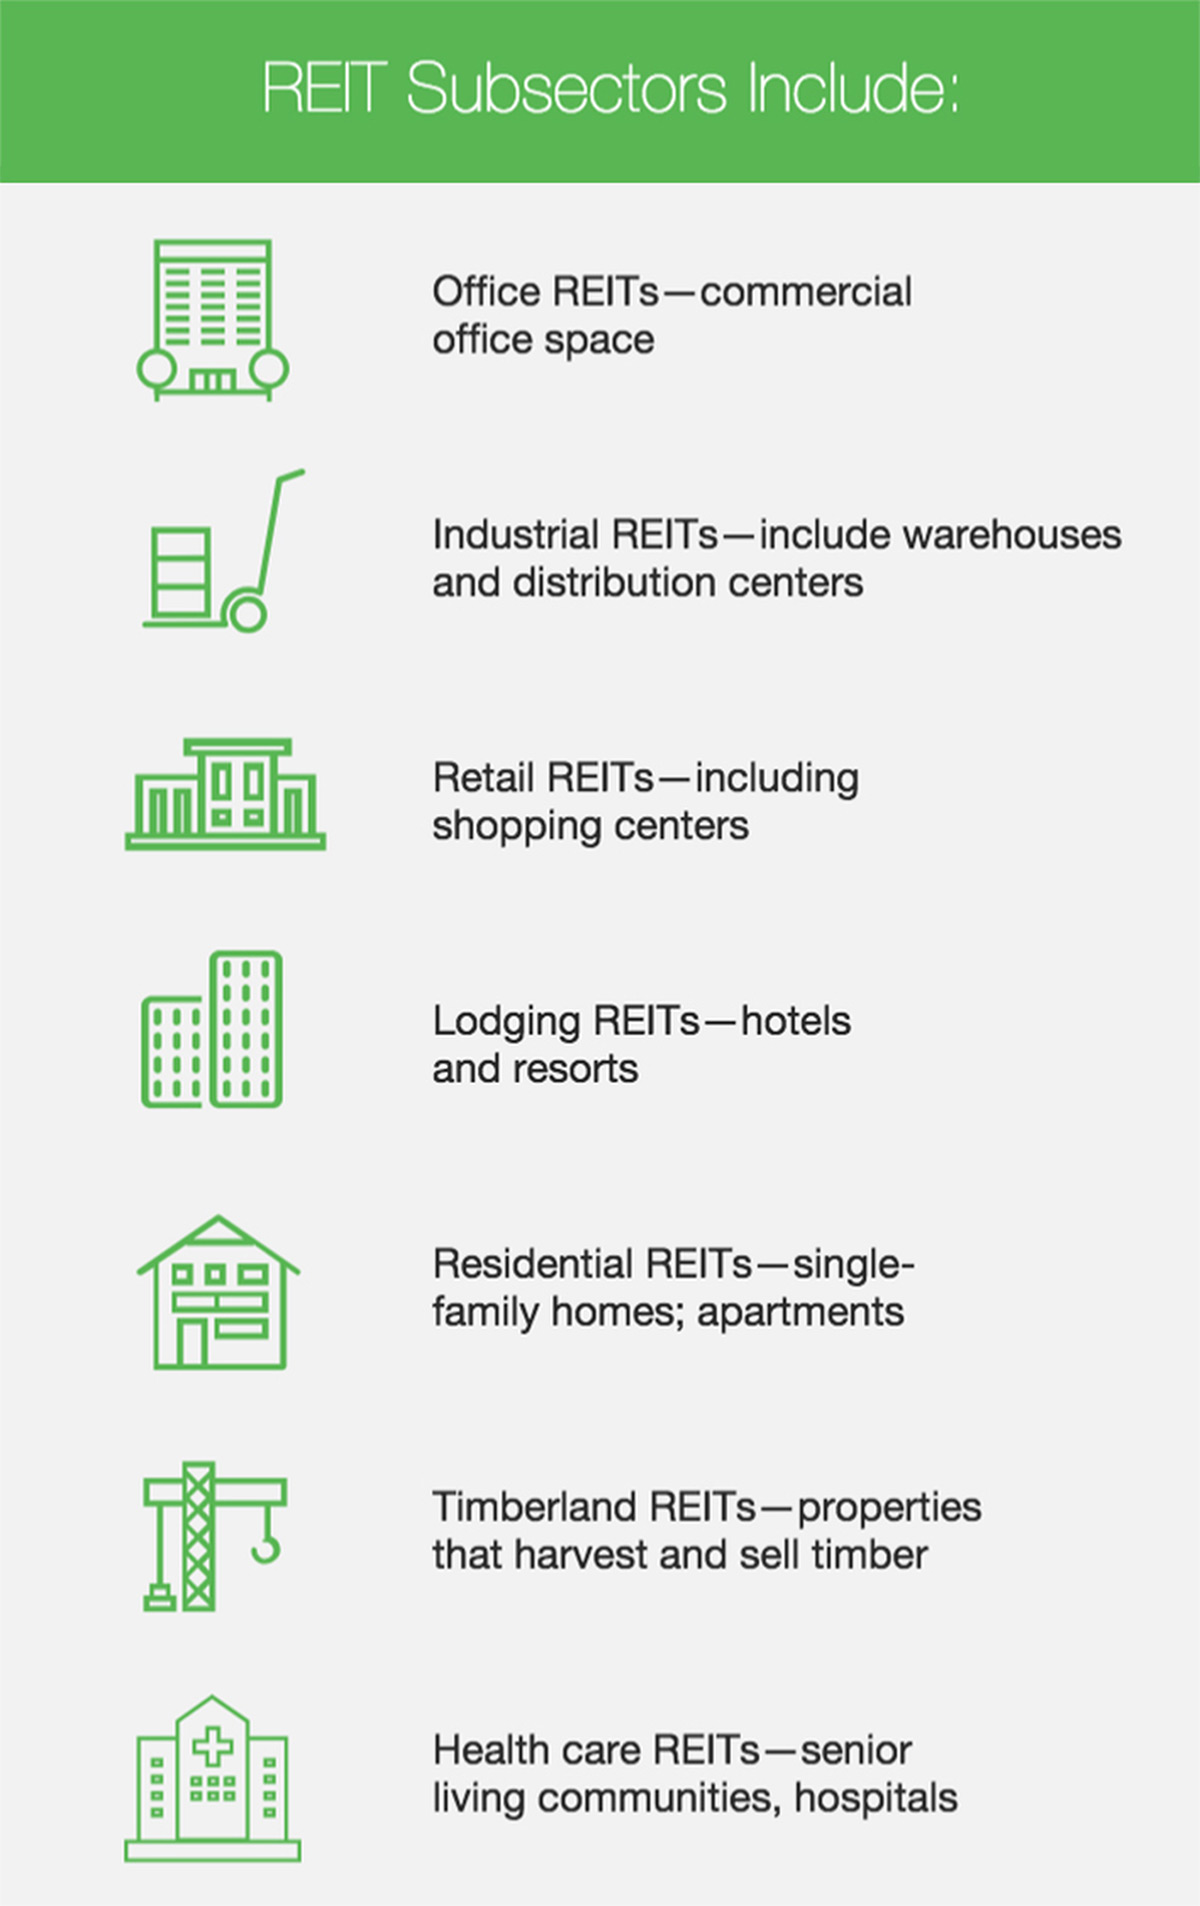 REIT subsectors: office, industrial, retail, lodging, residential, timberland, health care